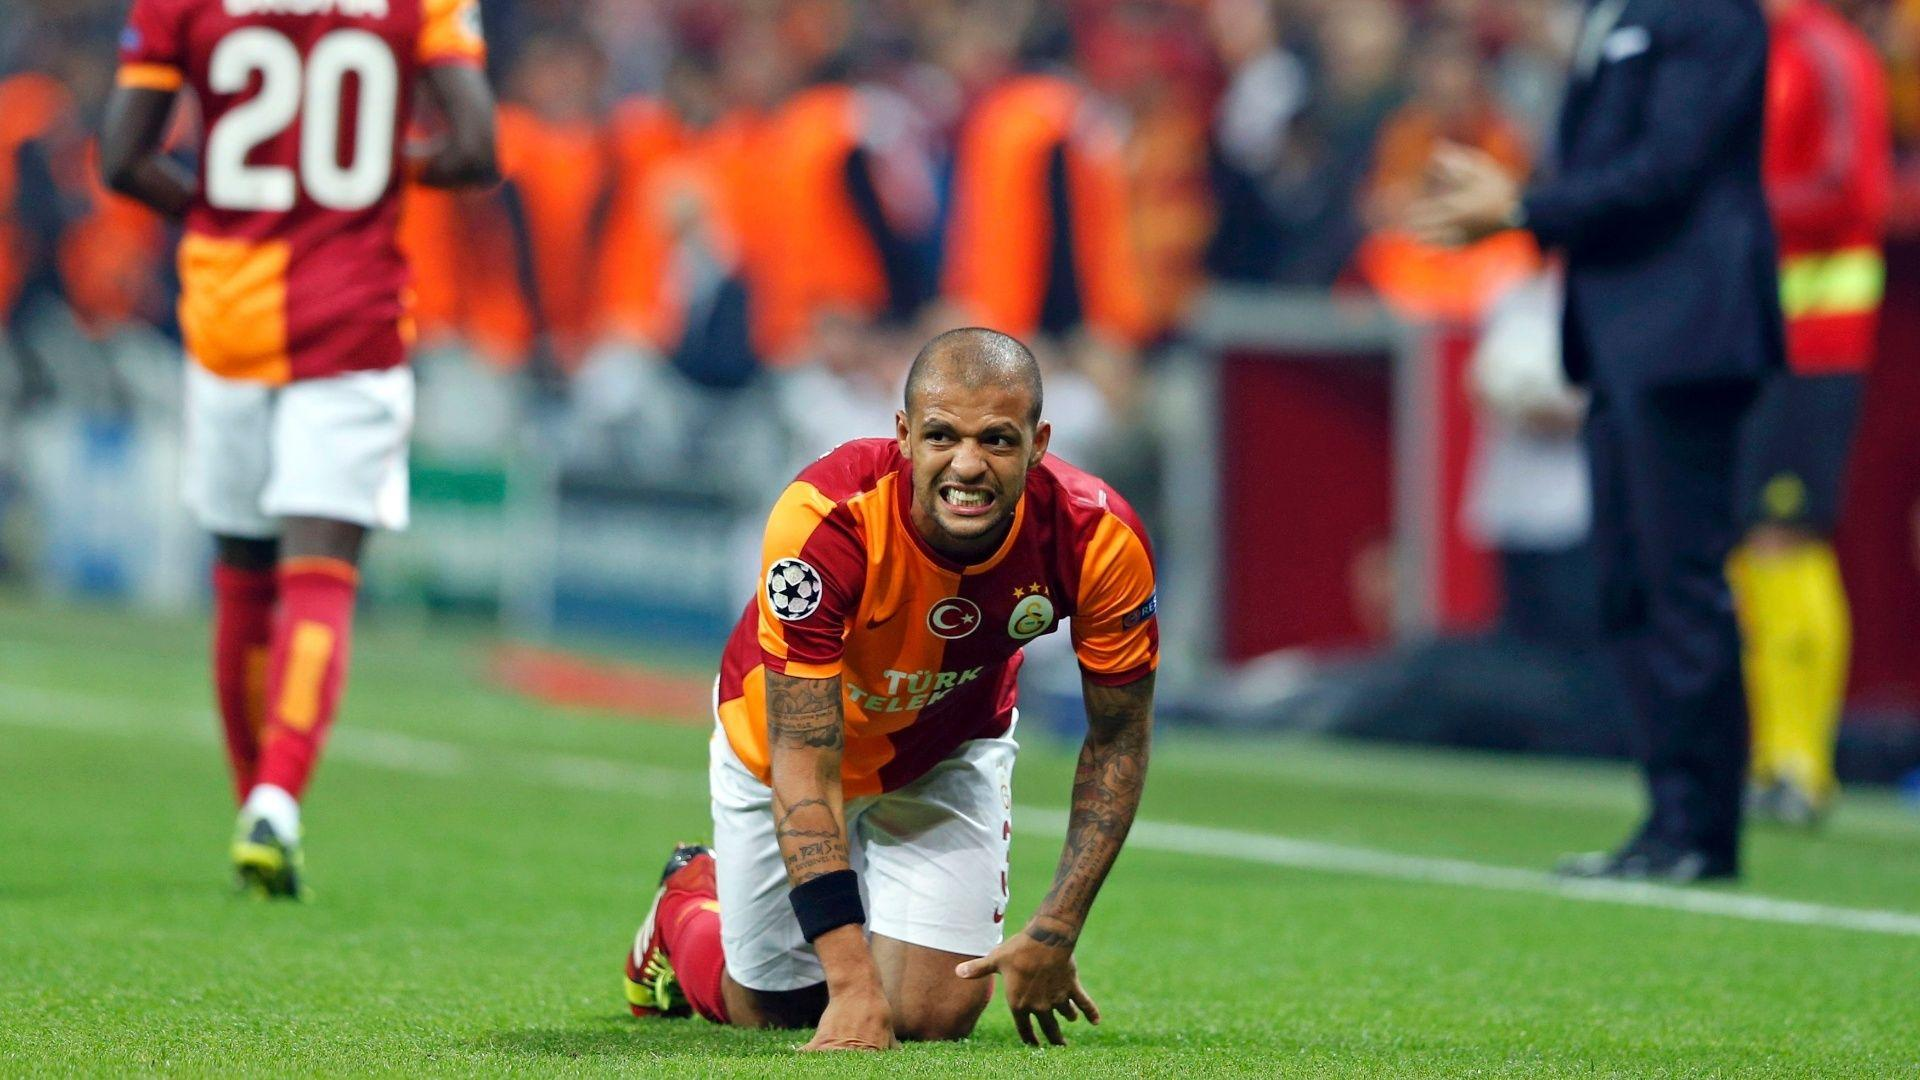 efb37d21d2e Felipe Melo: I want Inter, my family doesn't feel at home in. Download